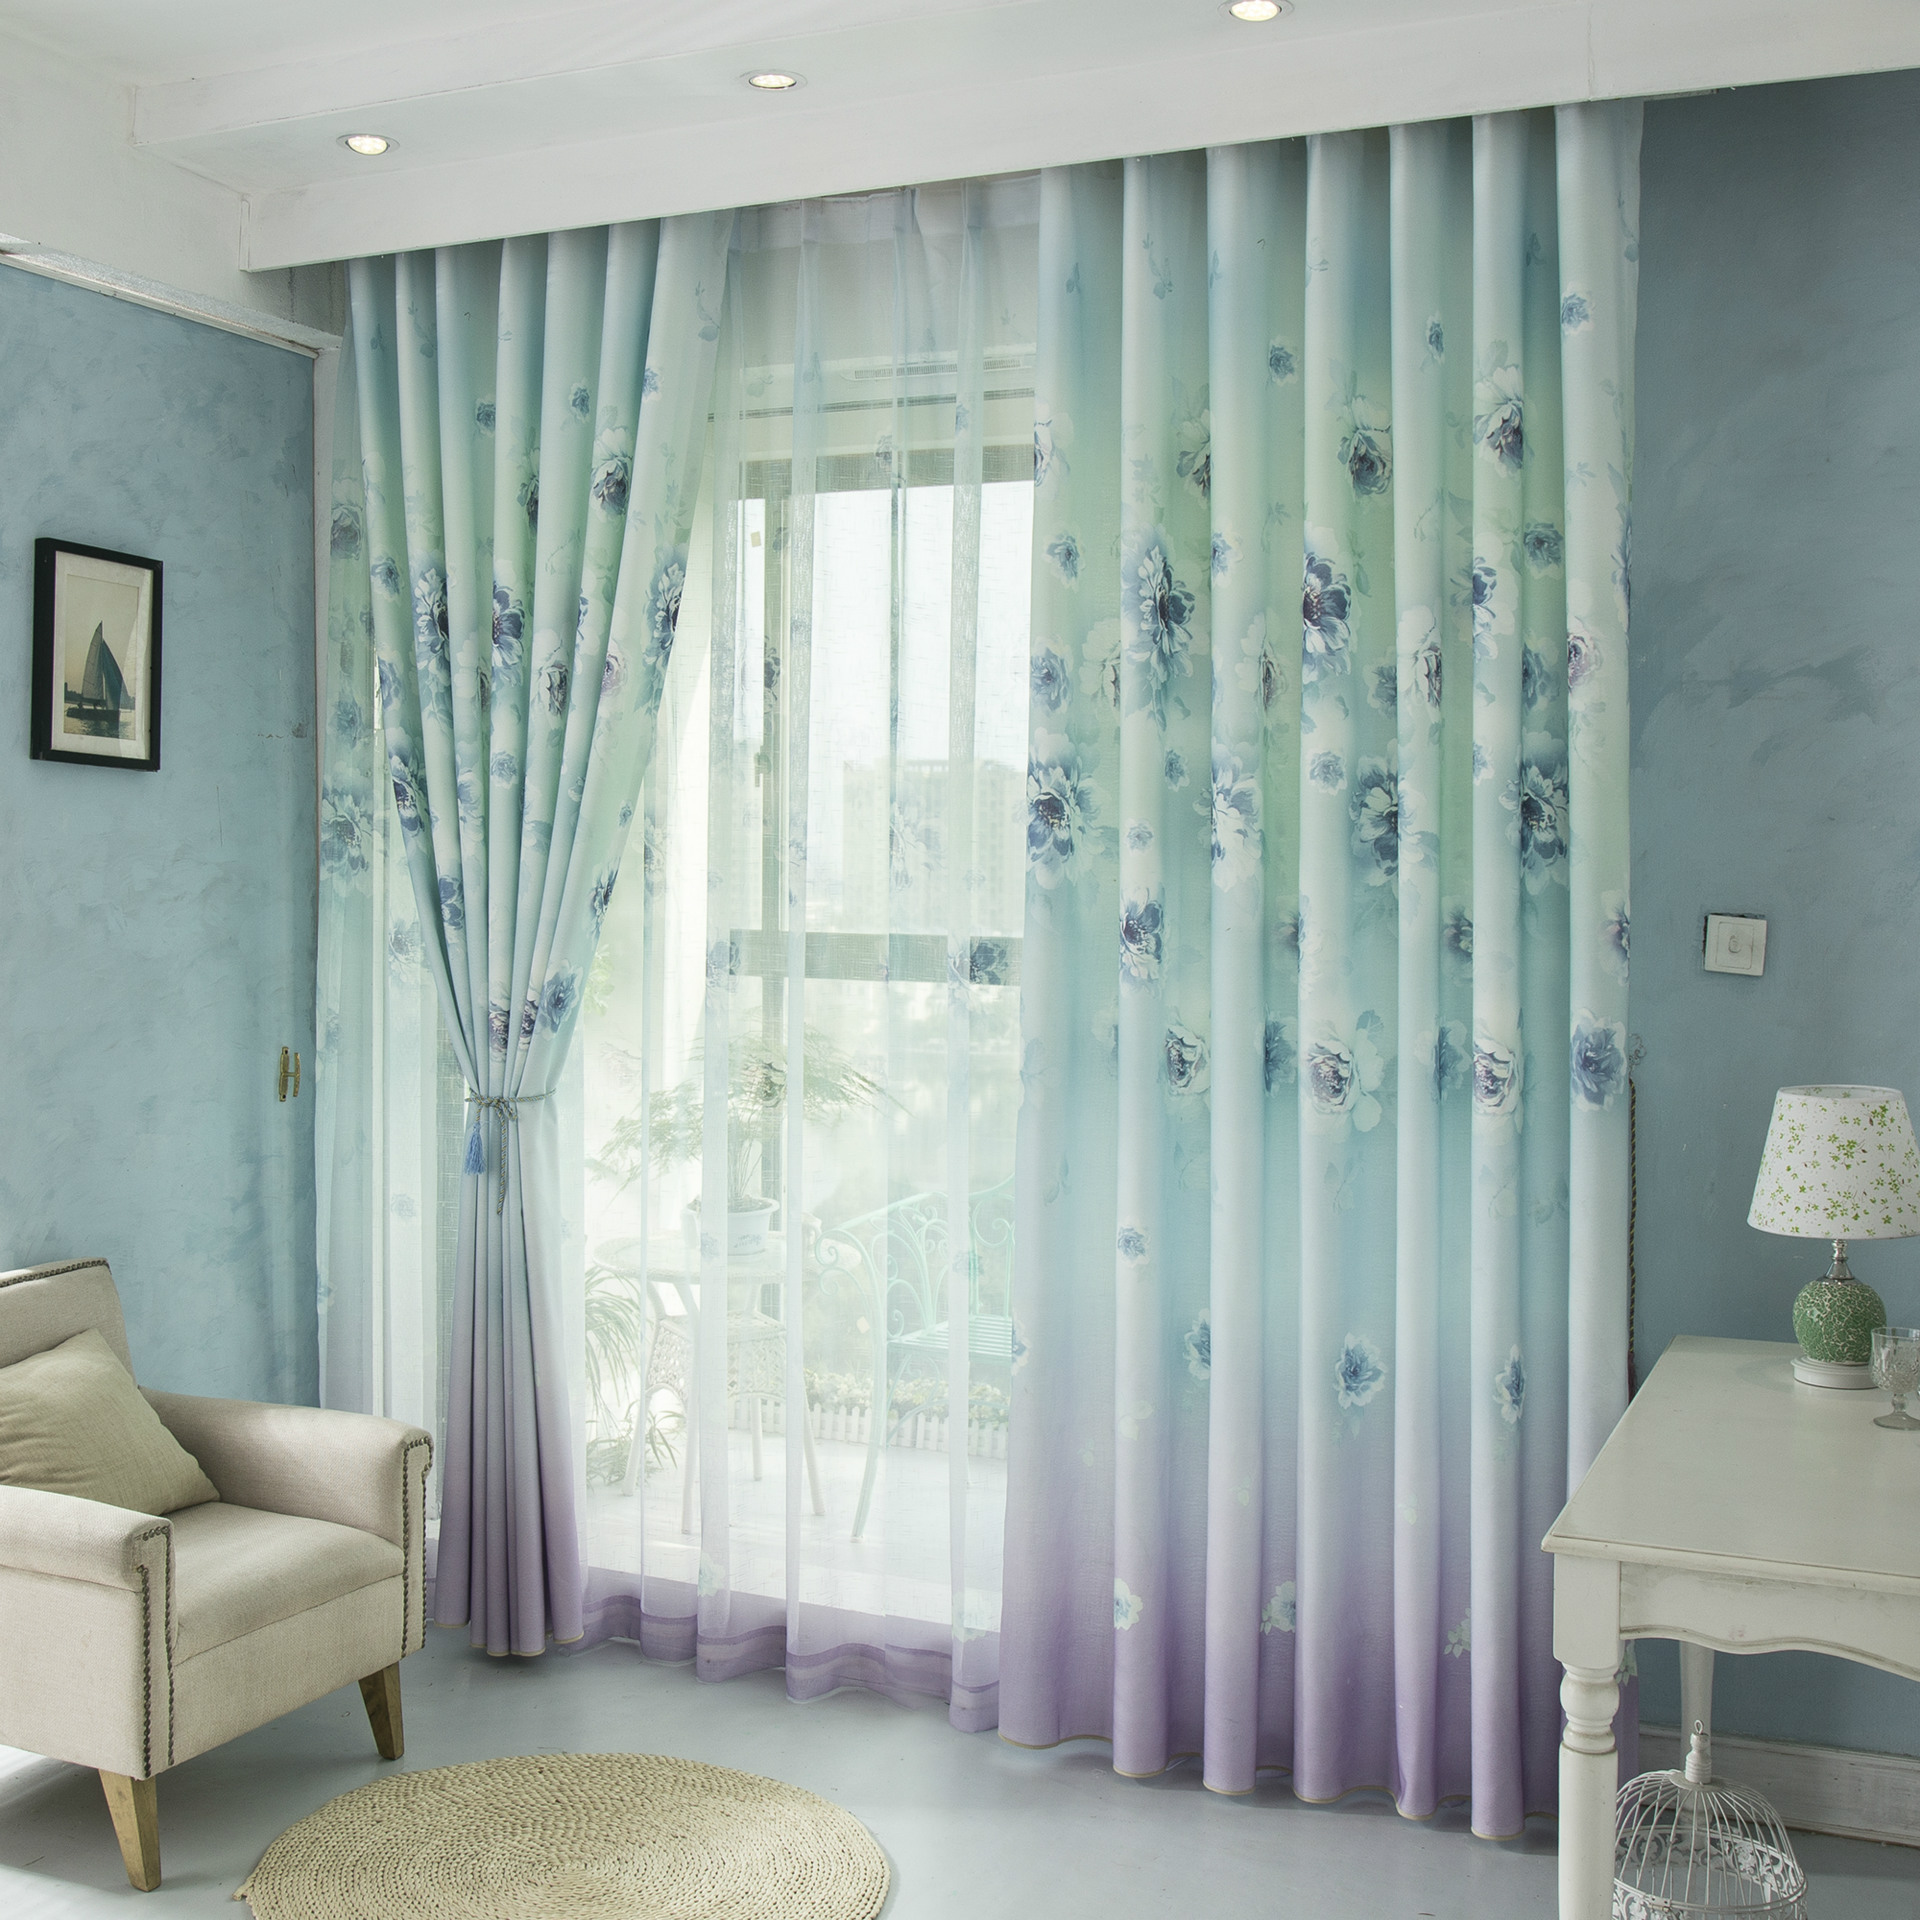 Curtains for bedroom 2016 - Curtains For Living Dining Room Bedroom 2016 New Curtains Cotton Printed Small Fresh Semi Shade Curtains